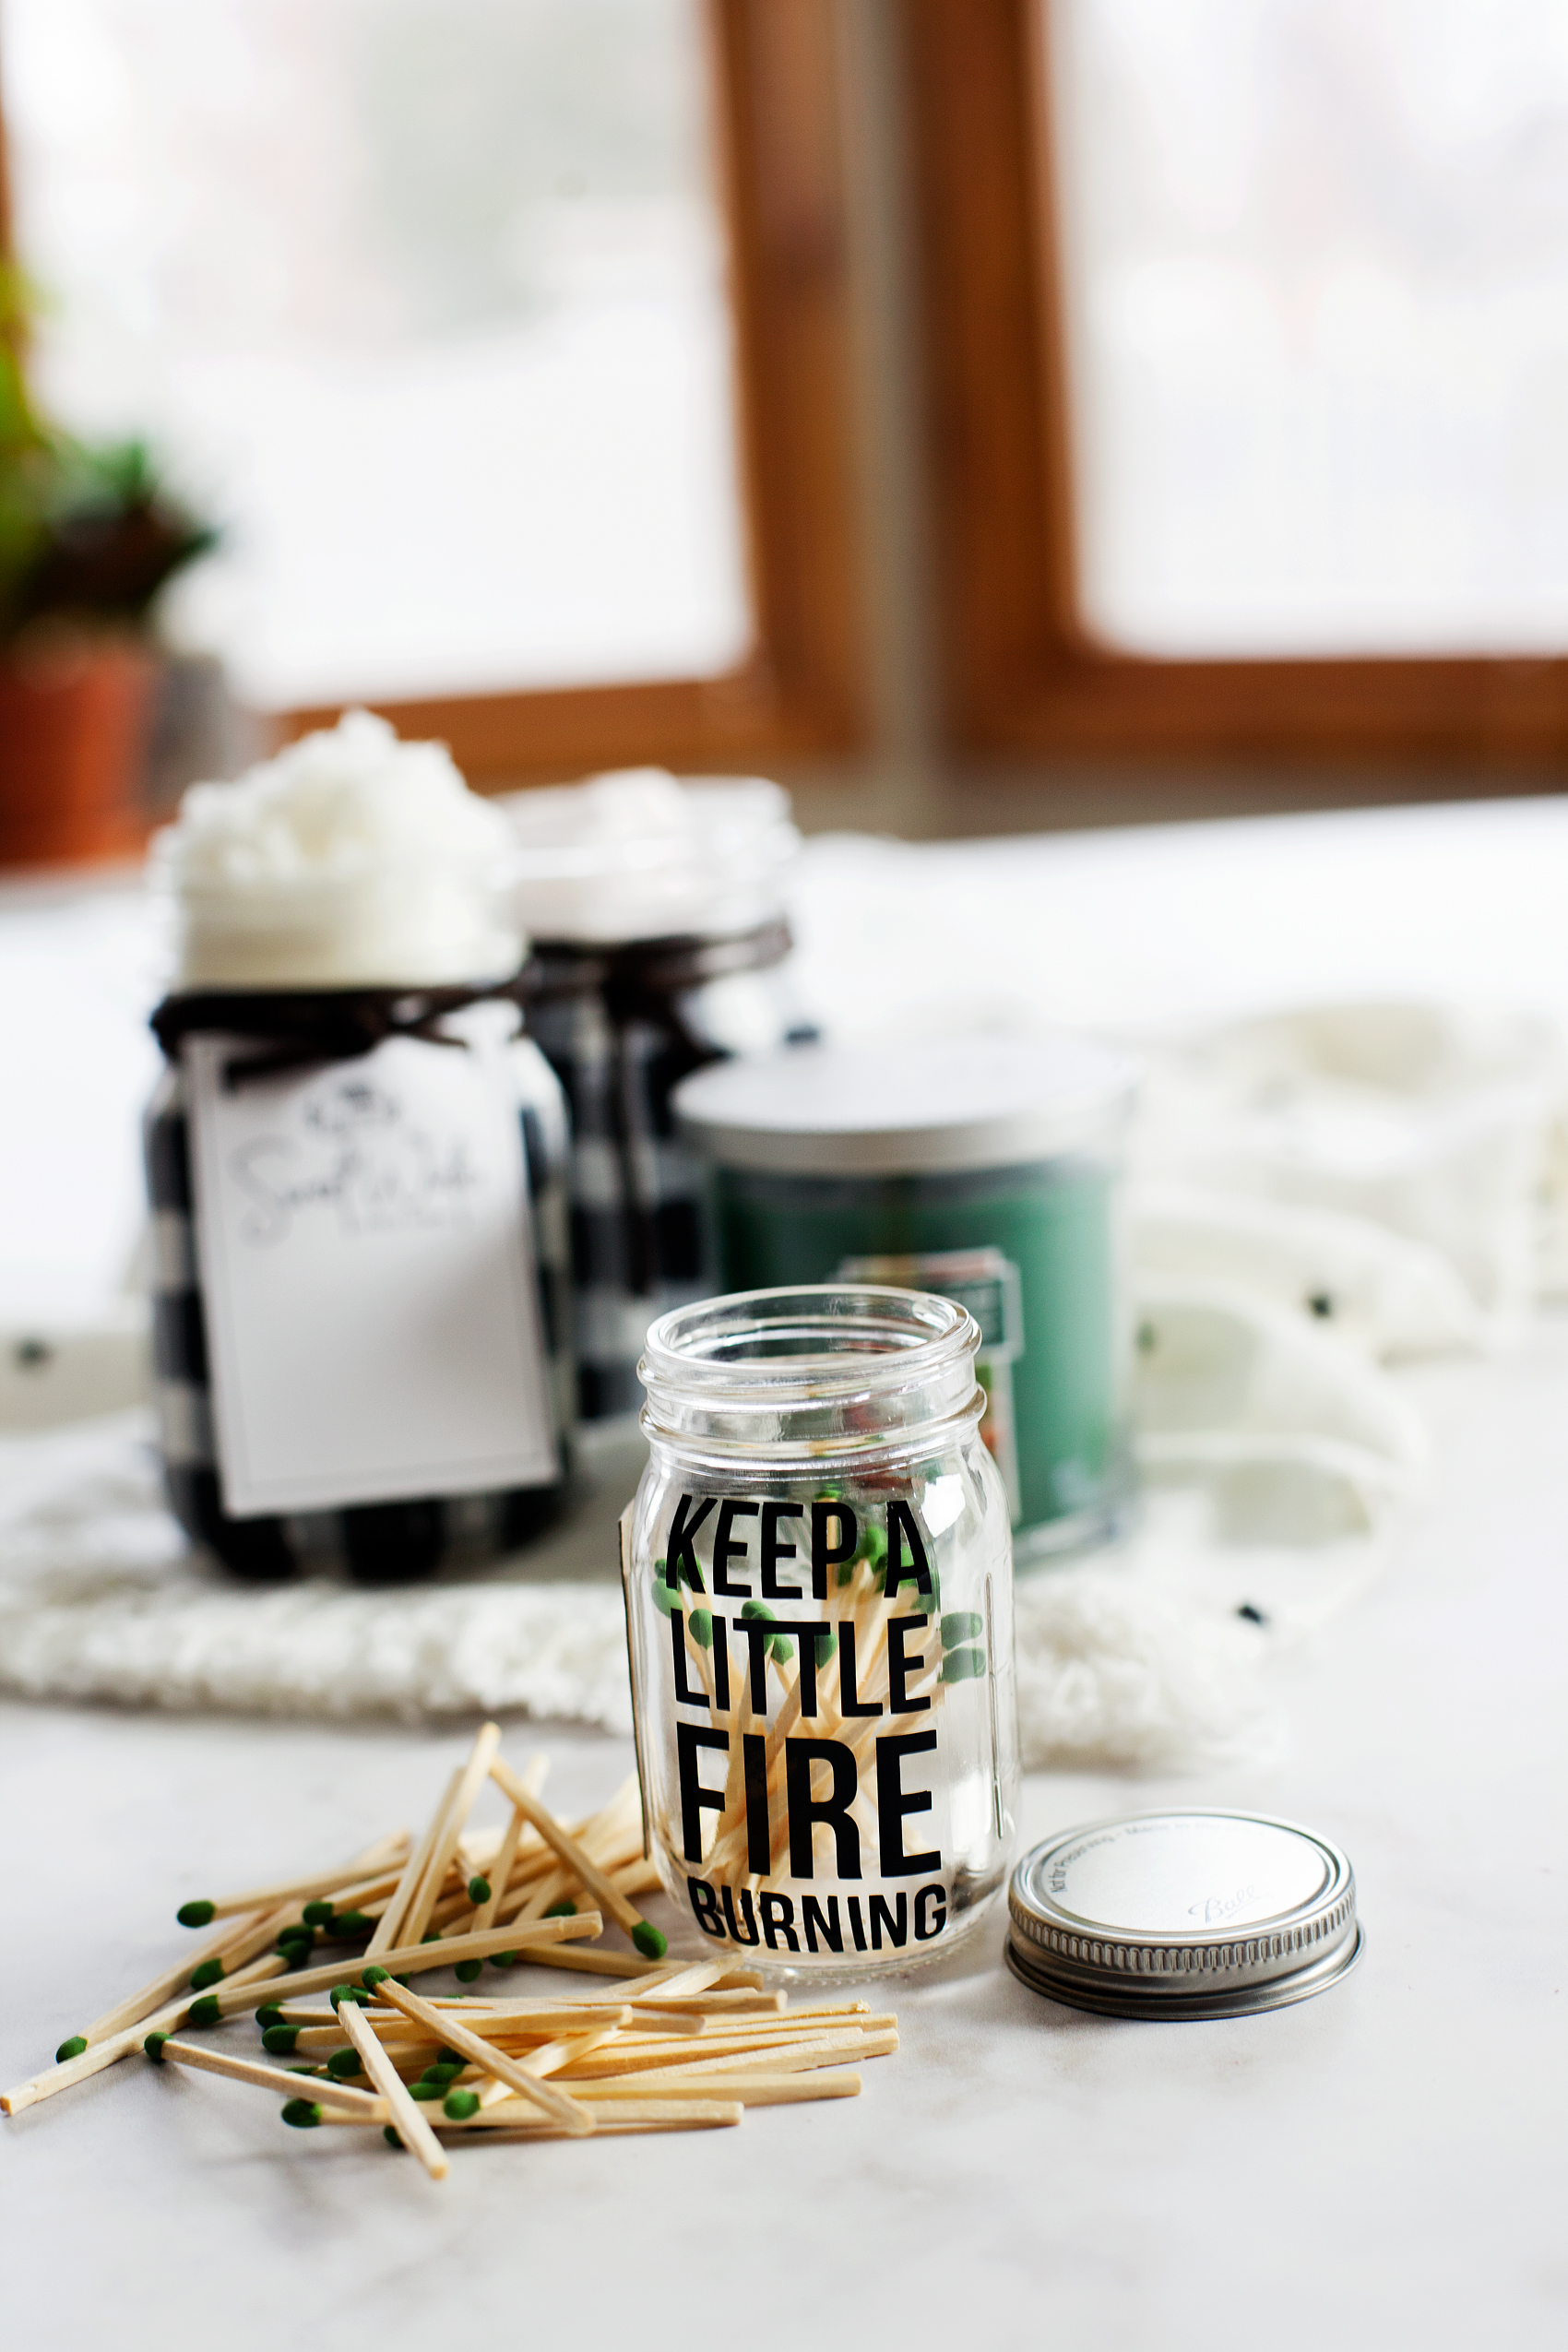 cute little Ball Match Jar from WhipperBerry